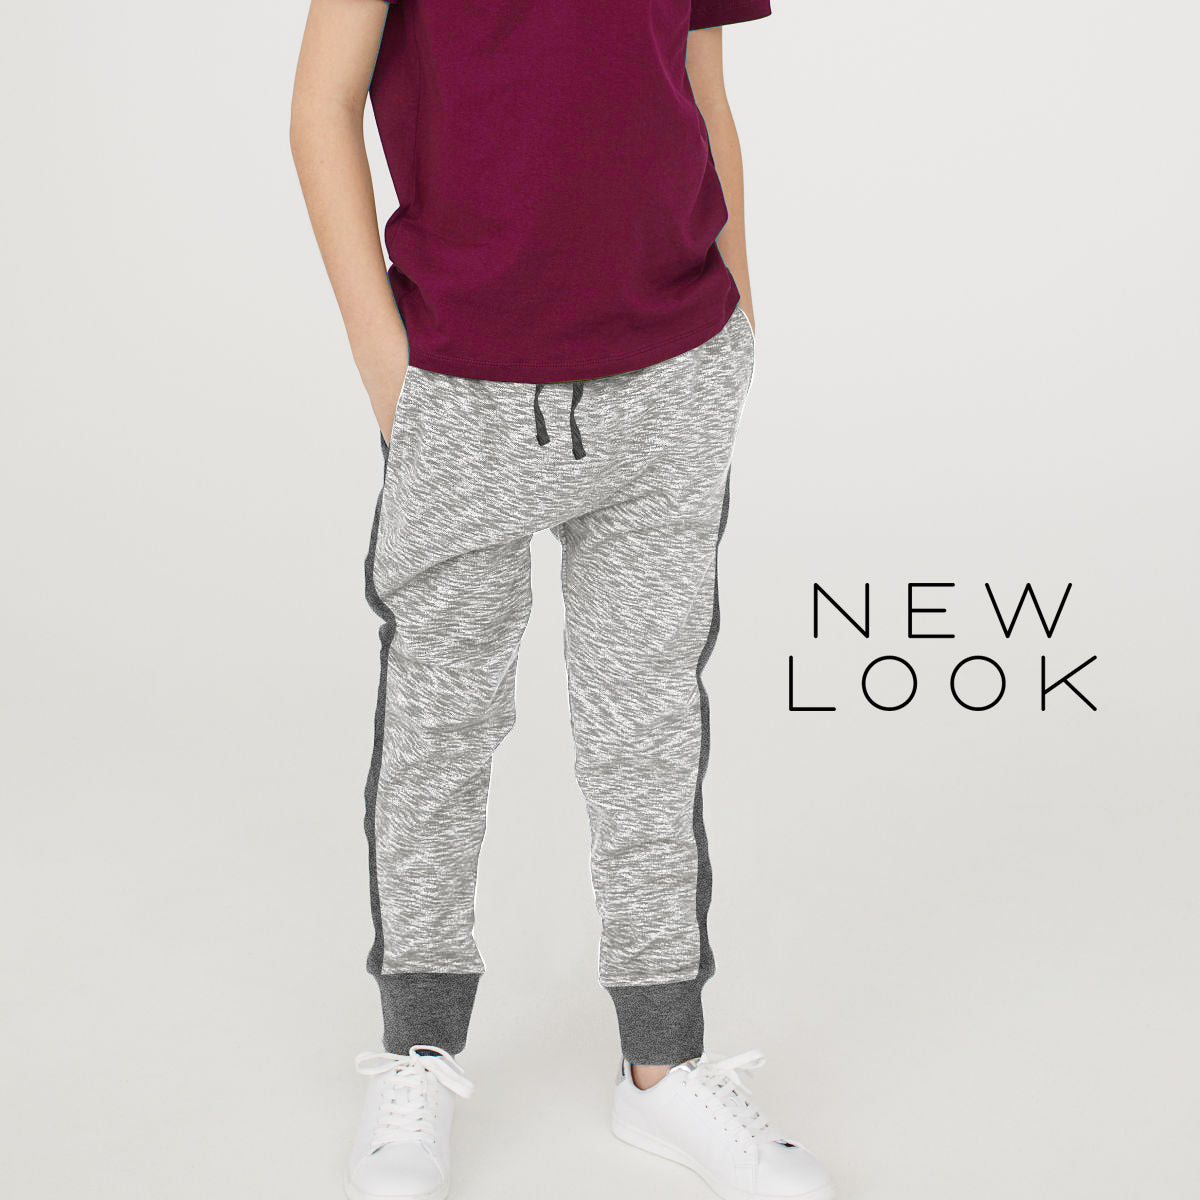 New Look Single Jersey Jogger Trouser For Kids-Gray Melange & Gray-NA1183